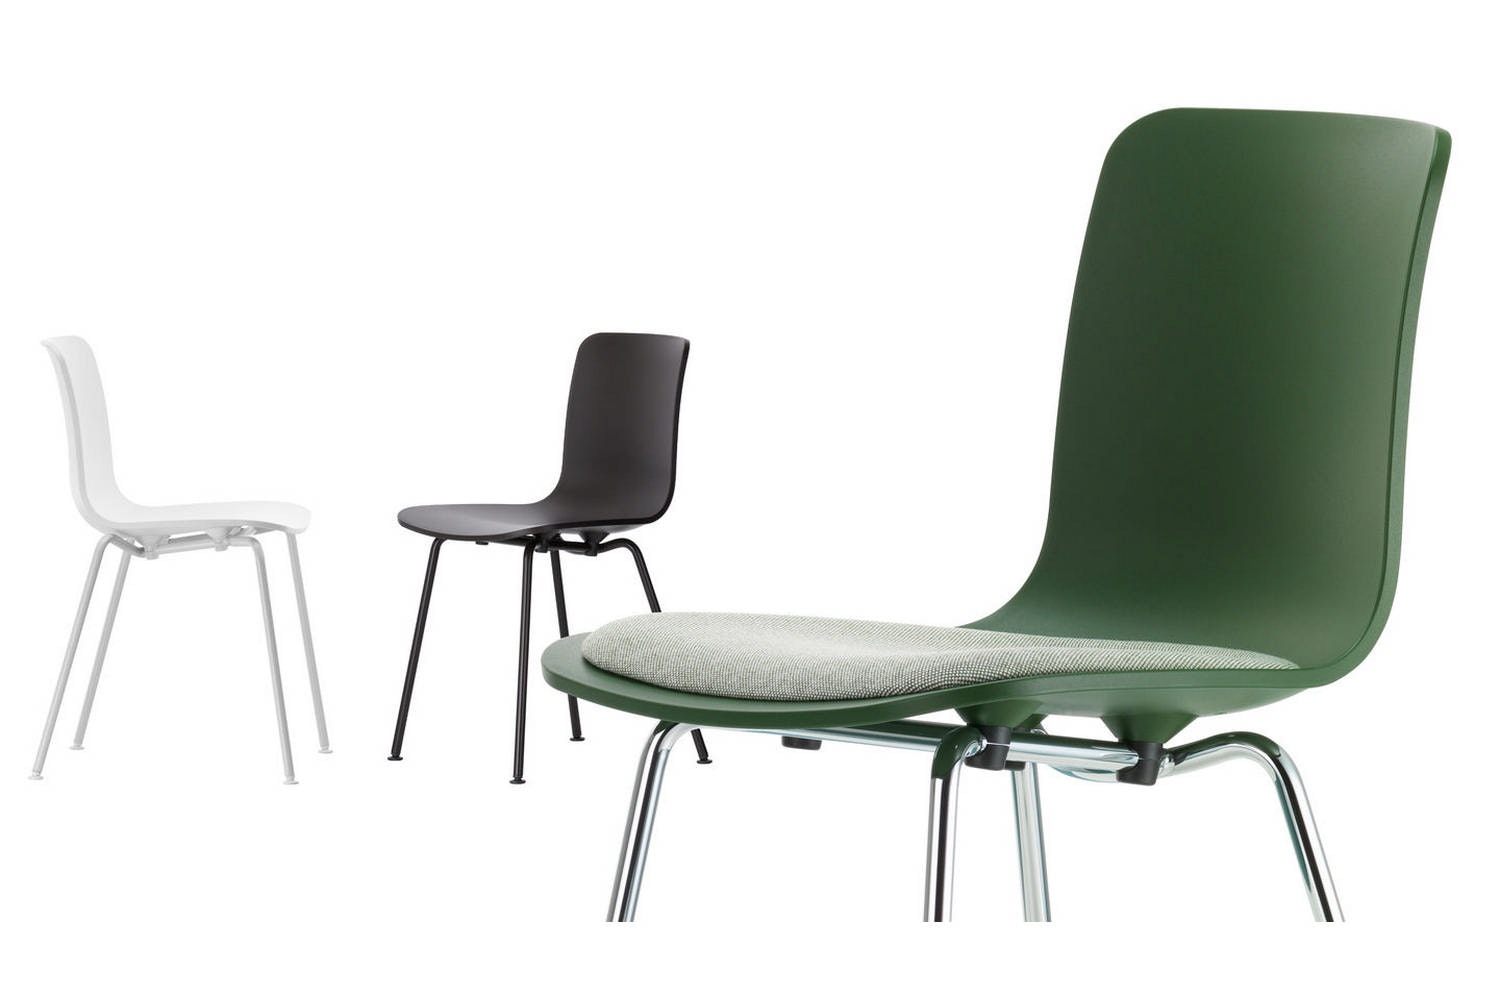 HAL Tube Chair by Jasper Morrison for Vitra